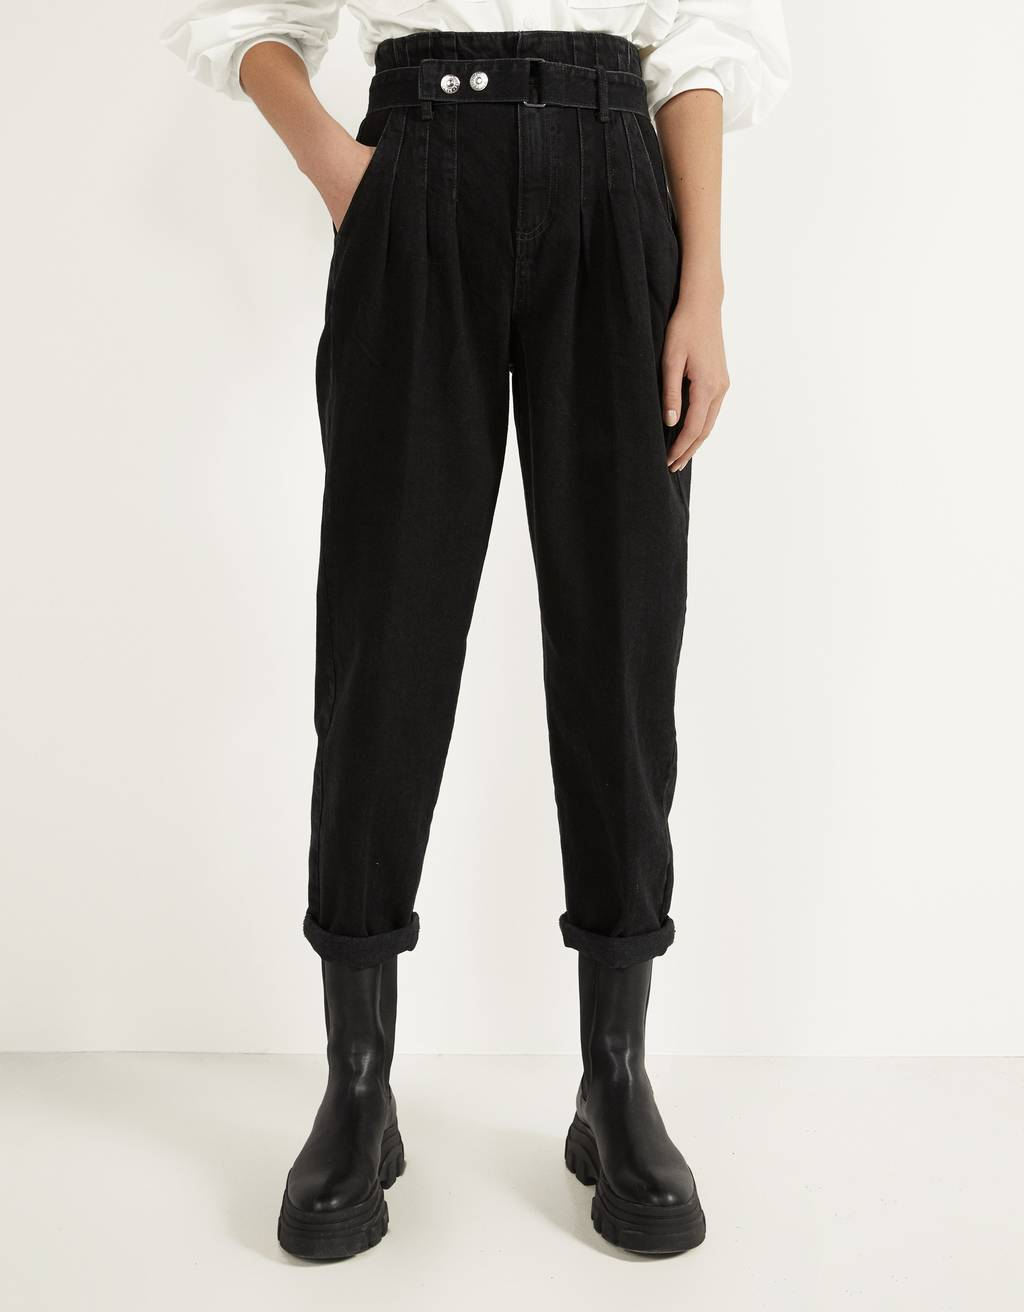 Slouchy pants with belt